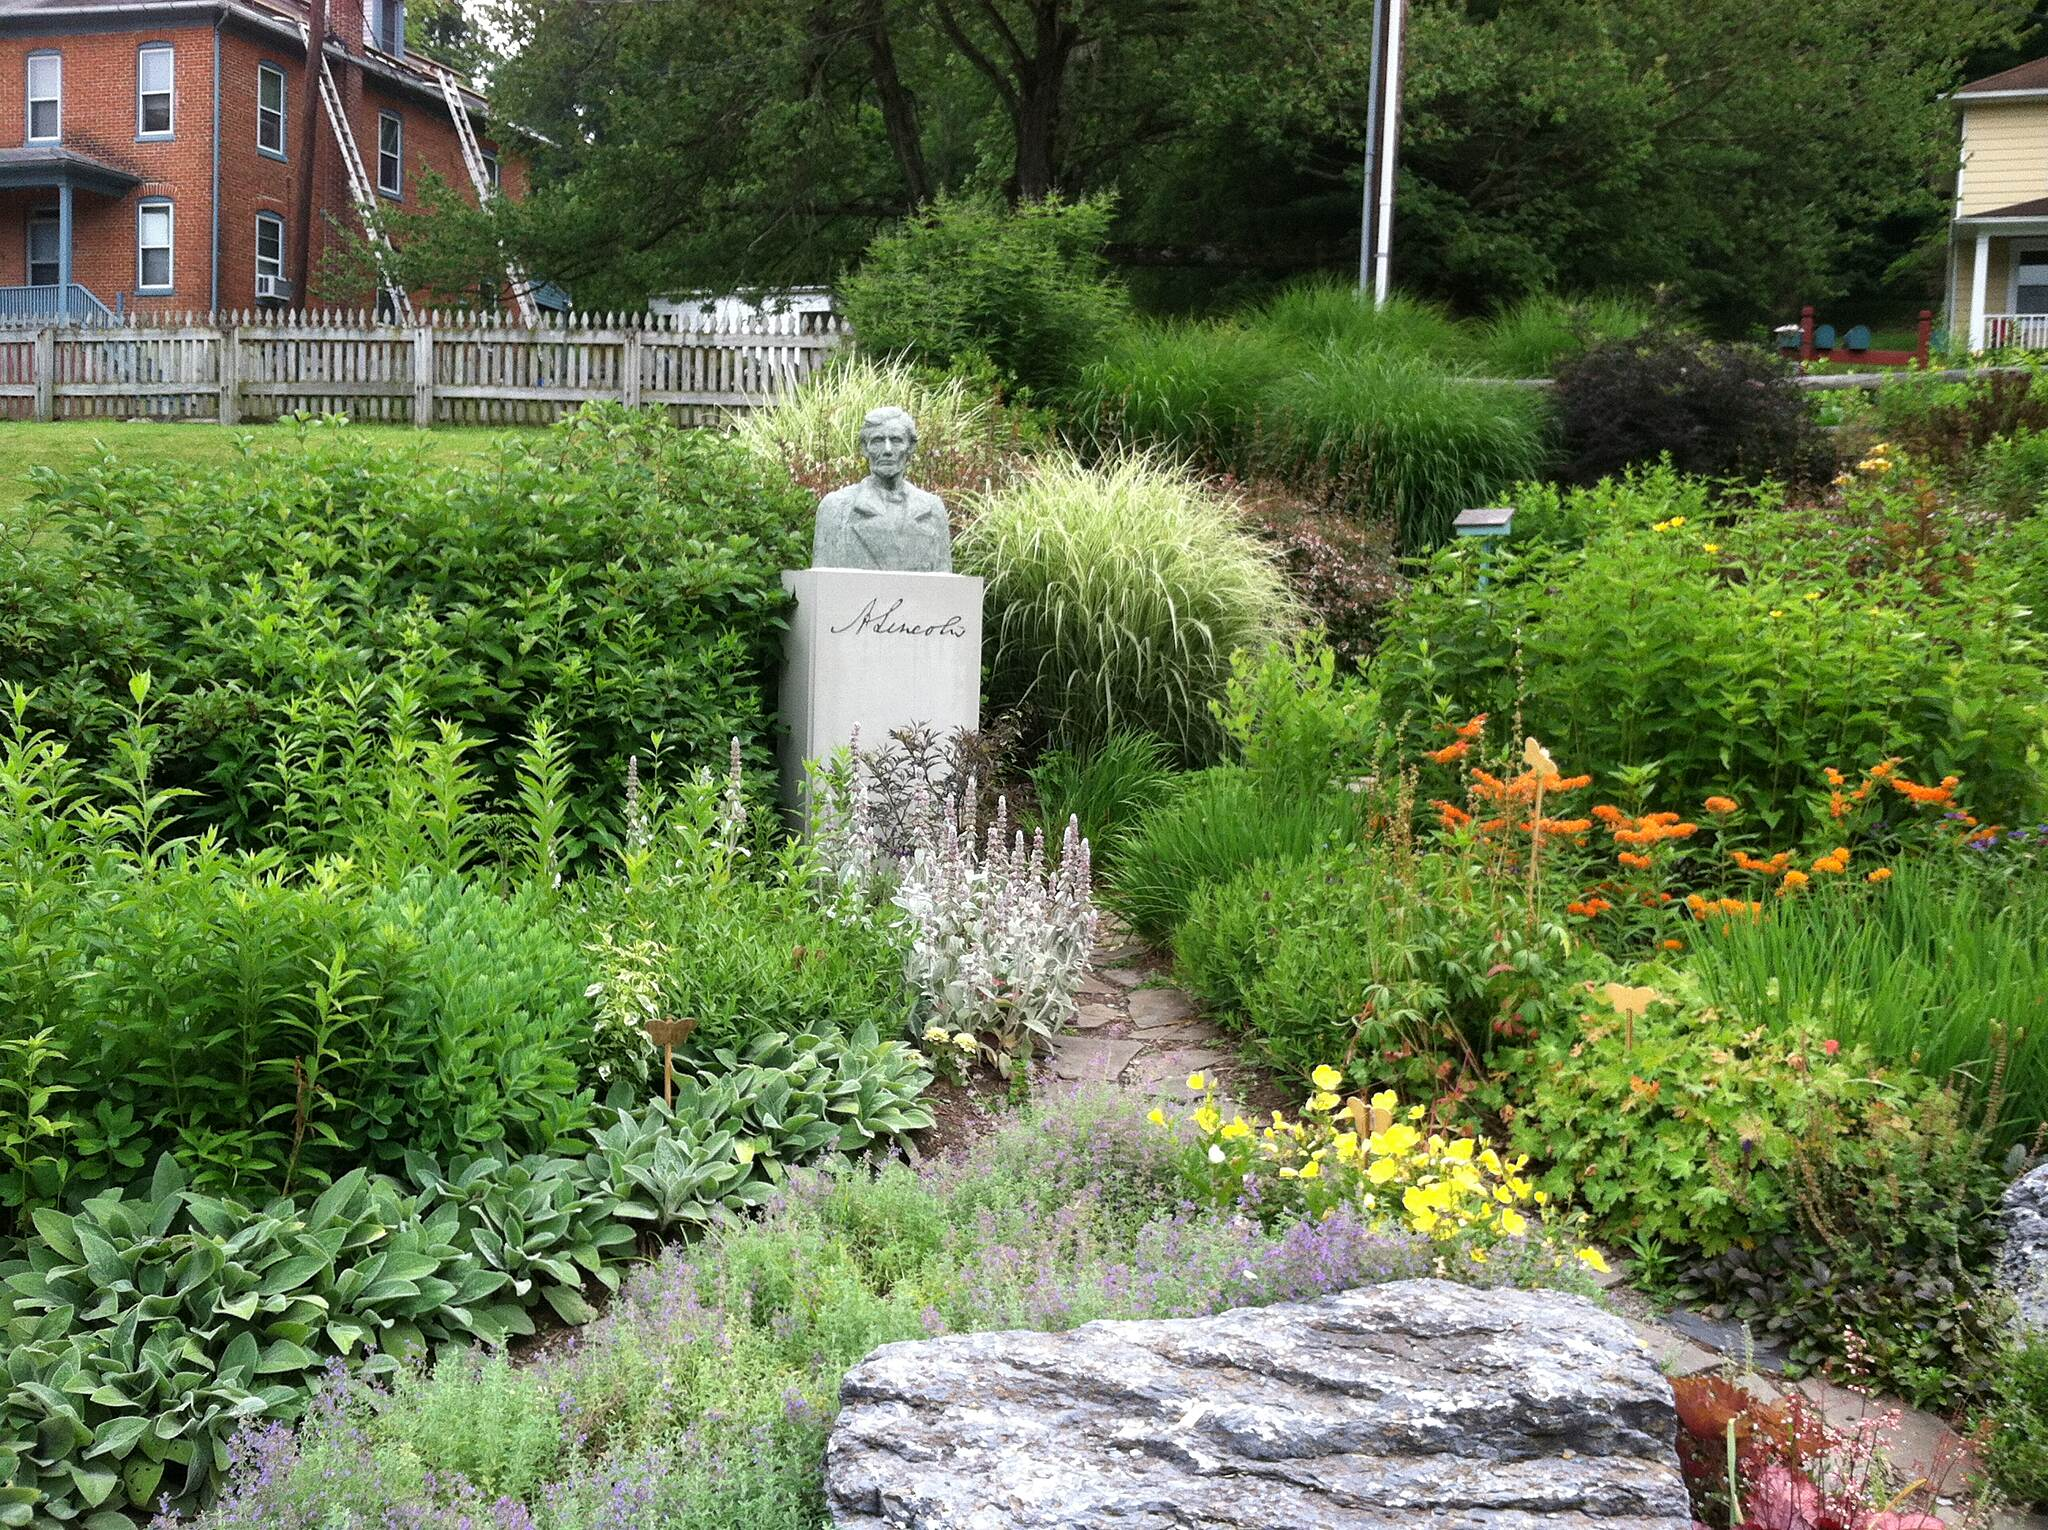 Heritage Rail Trail County Park Garden at Hanover Junction